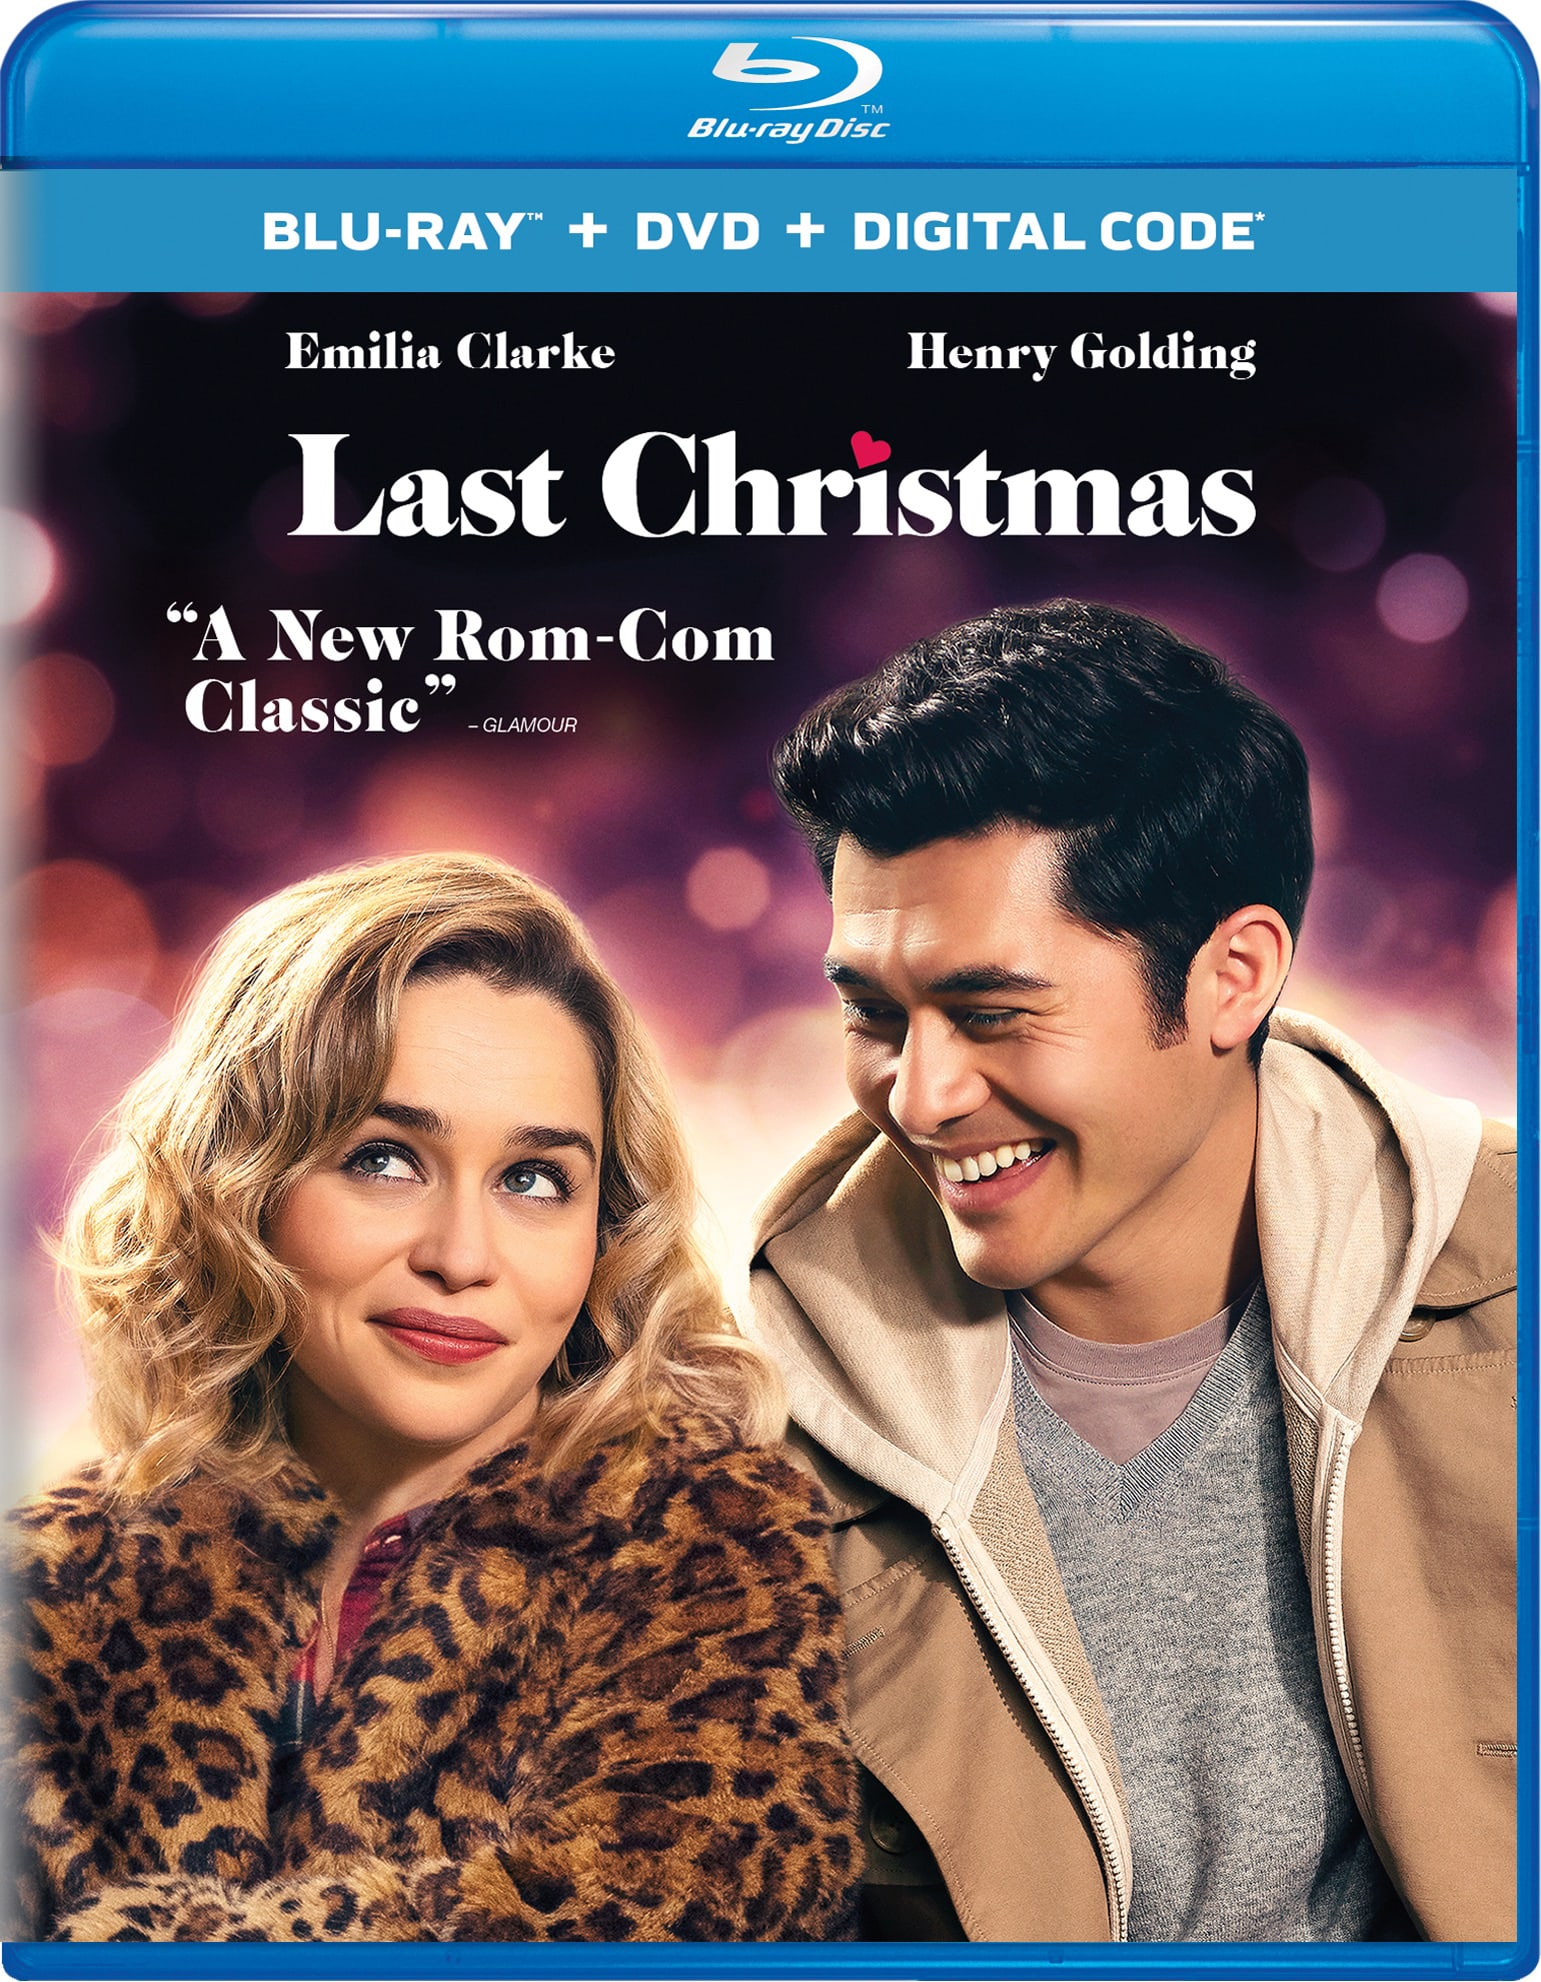 Last Christmas (DVD + Digital) [Blu-ray]